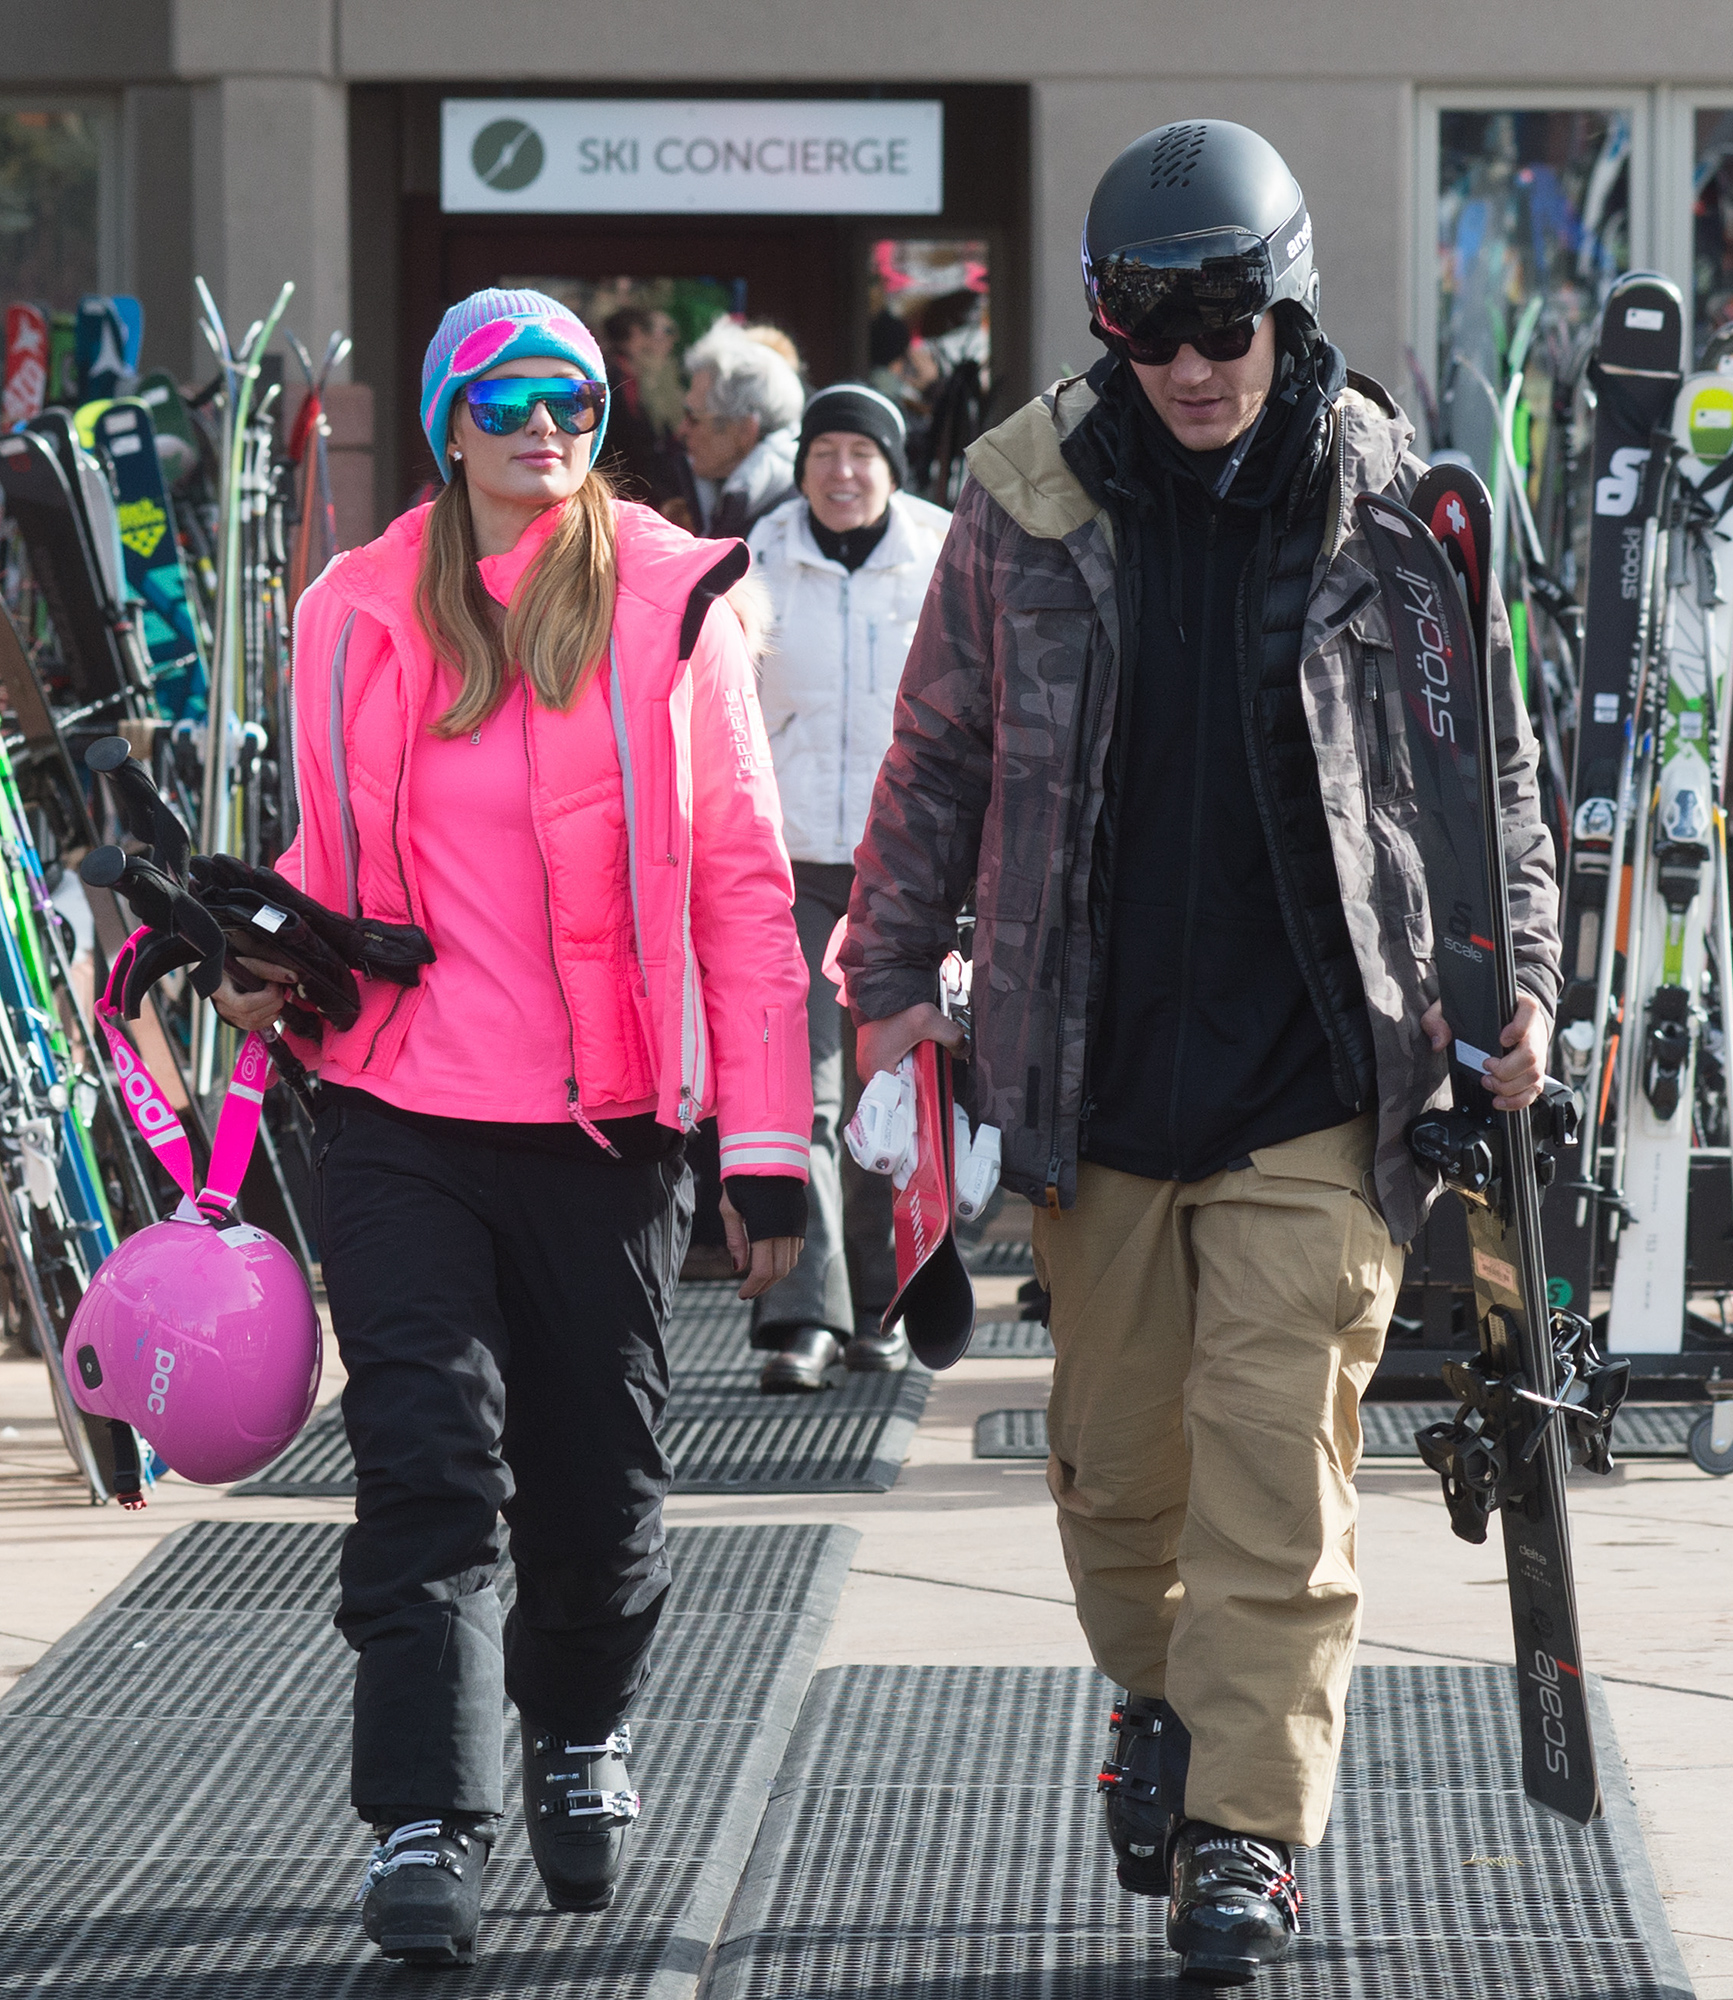 EXCLUSIVE: Paris Hilton and Her Boyfriend Chris Zylka are Pictured Heading to go Skiing in Aspen, Colorado.